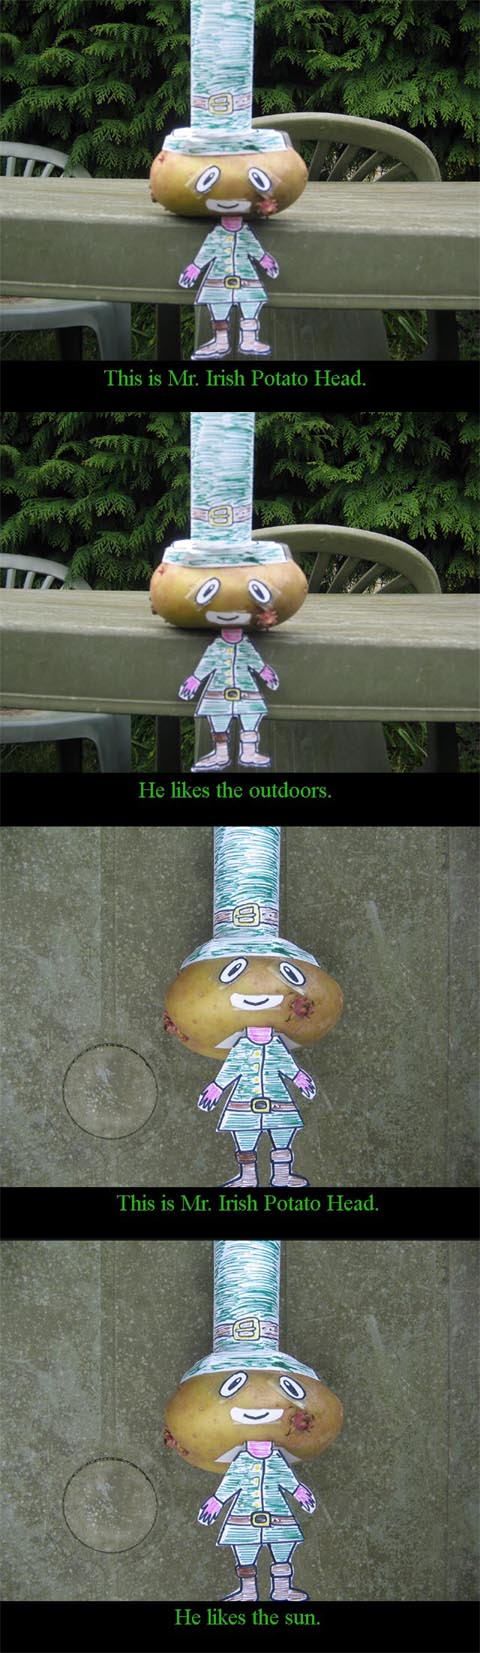 This is Mr. Irish Potato Head by Judan